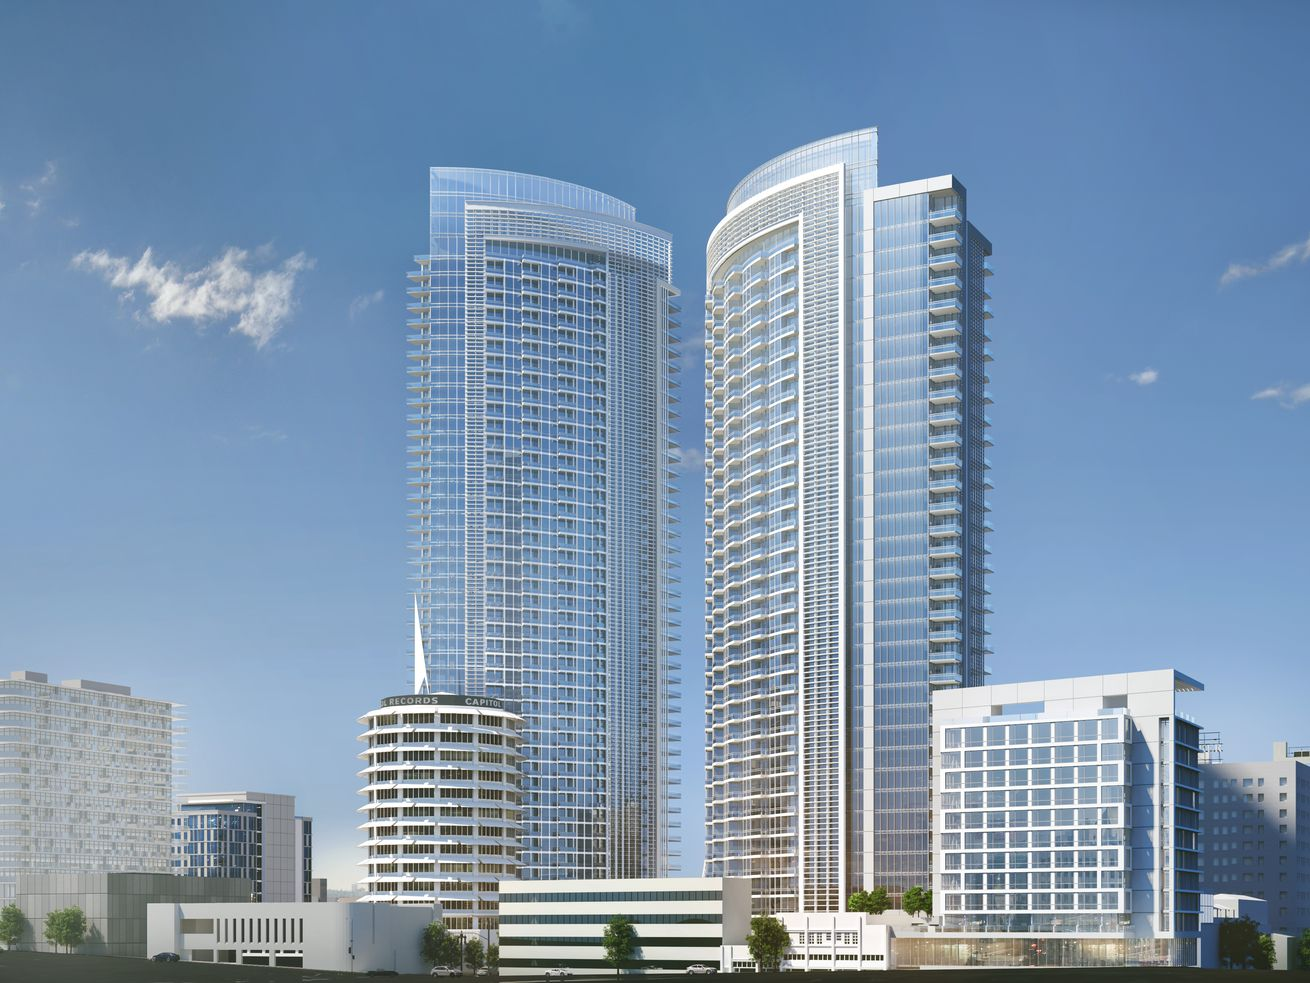 A rendering of two towers and a collection of low-rise buildings slated to rise around the Capitol Records building.